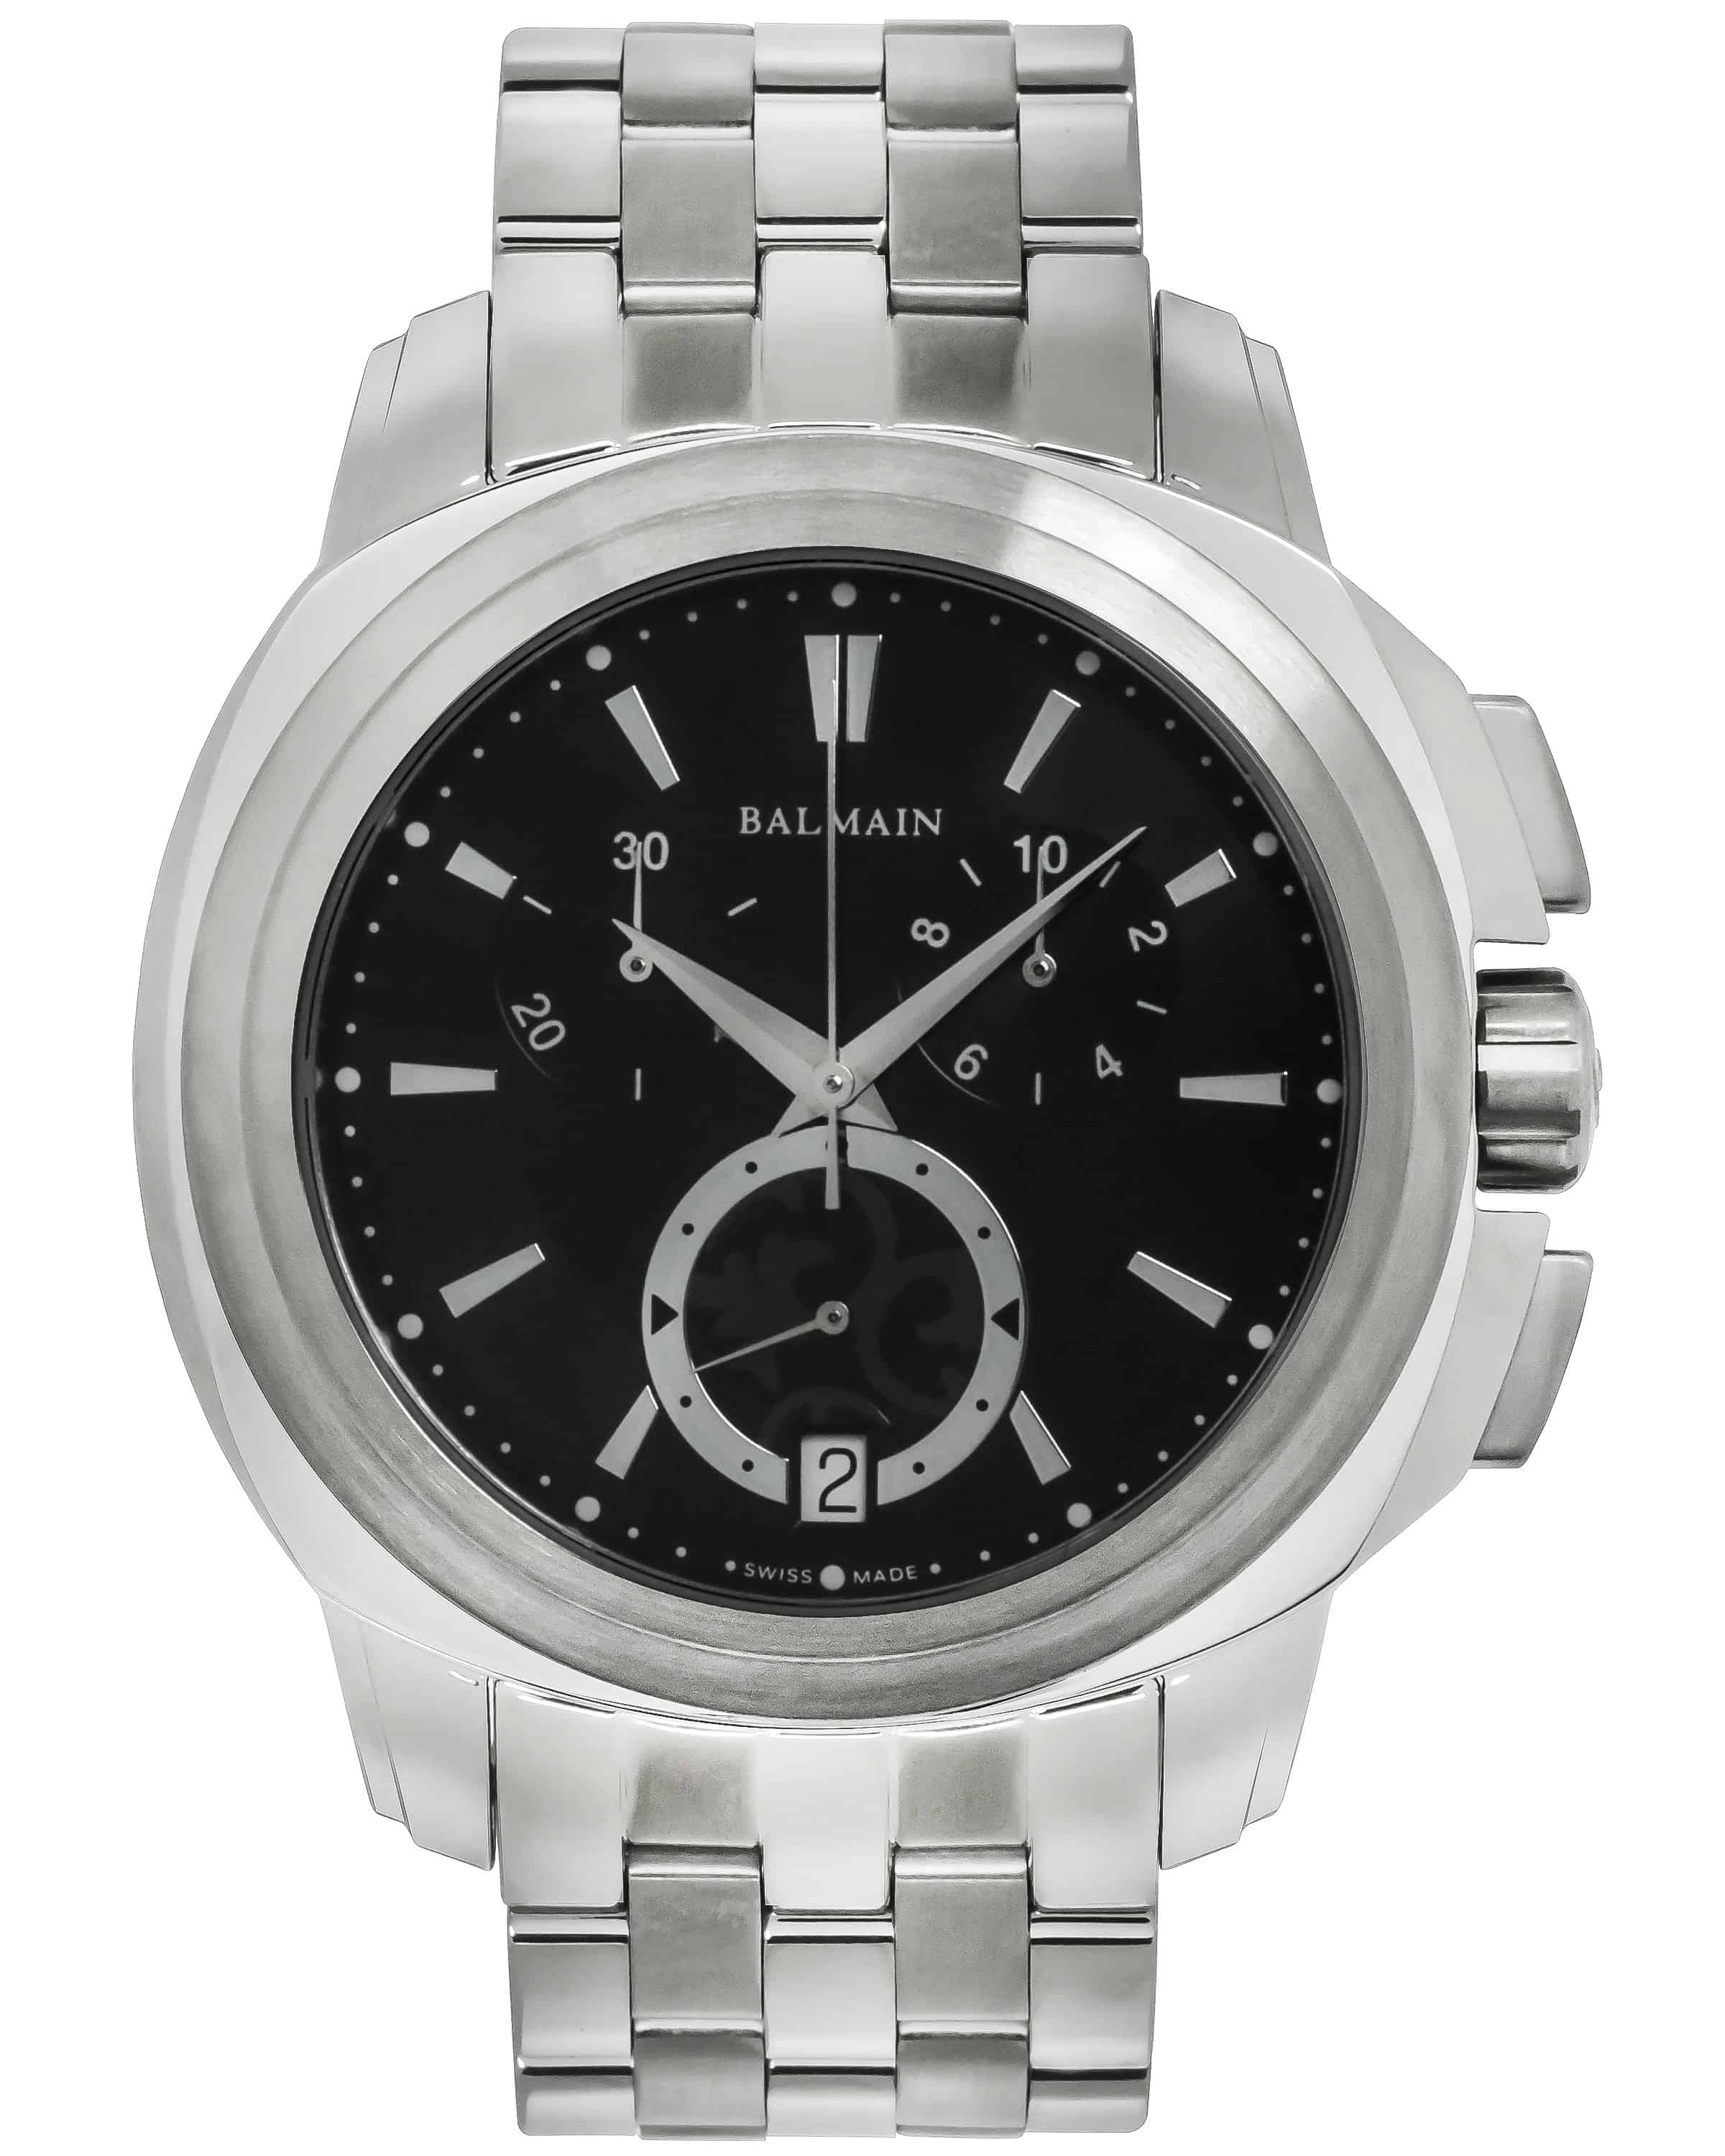 Balmain Madrigal Chrono Stainless Steel Quartz Men's Watch (B53413366)